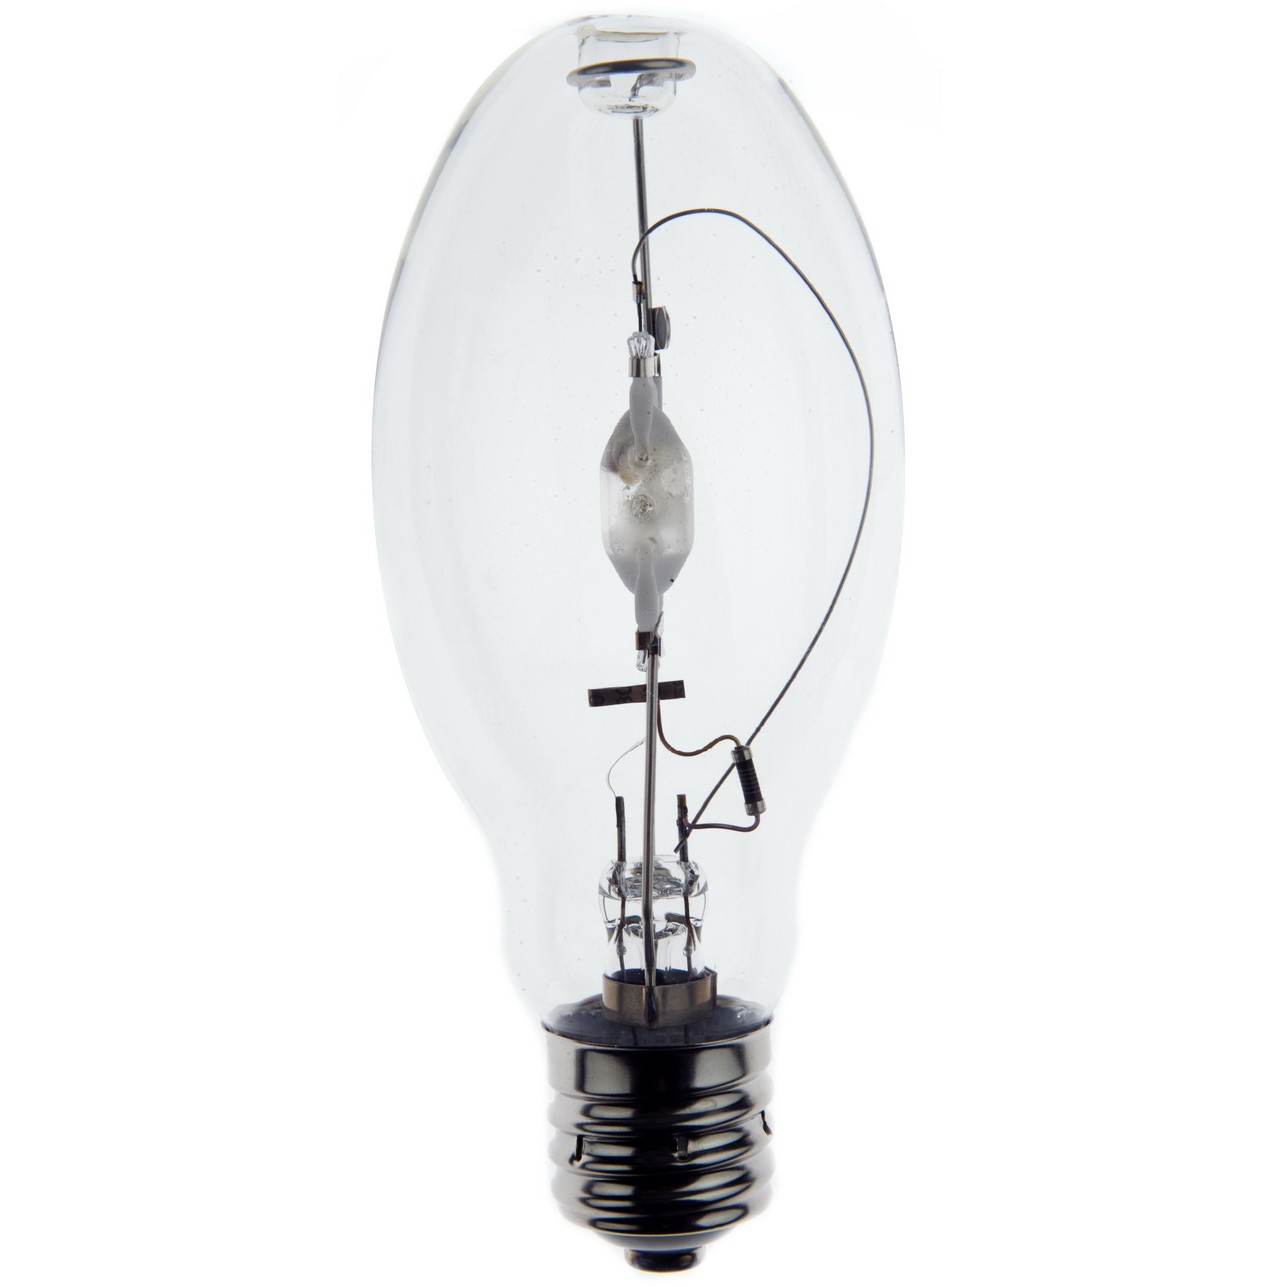 ROXI 1022 - 400W Metal Halide - ED28 Clear